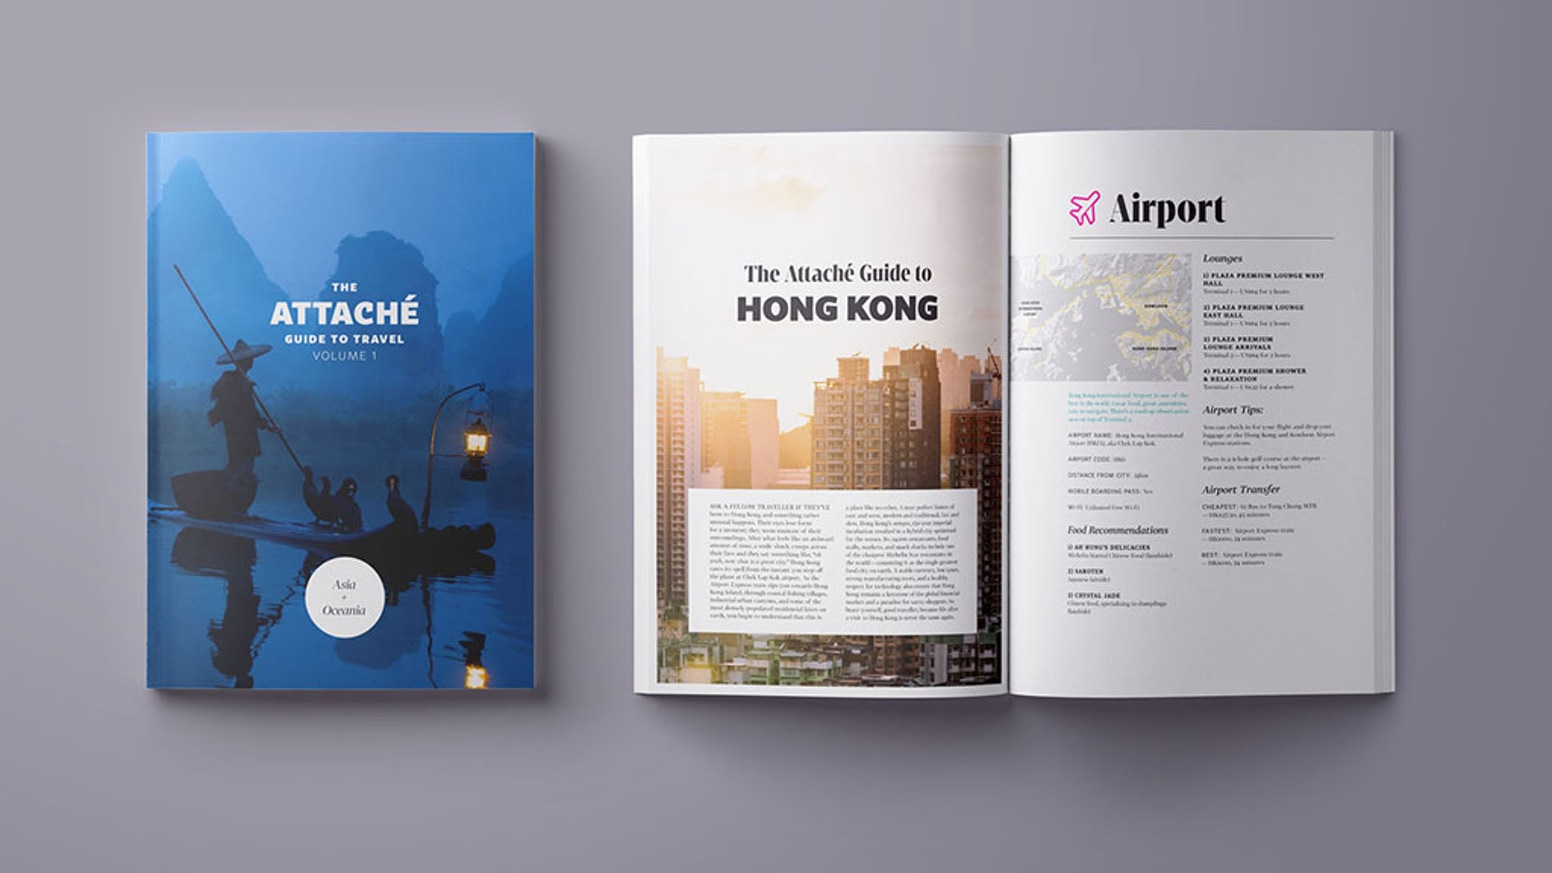 A beautifully designed travel guide book from the team behind the award-winning travel show Attaché. Order your copy today.